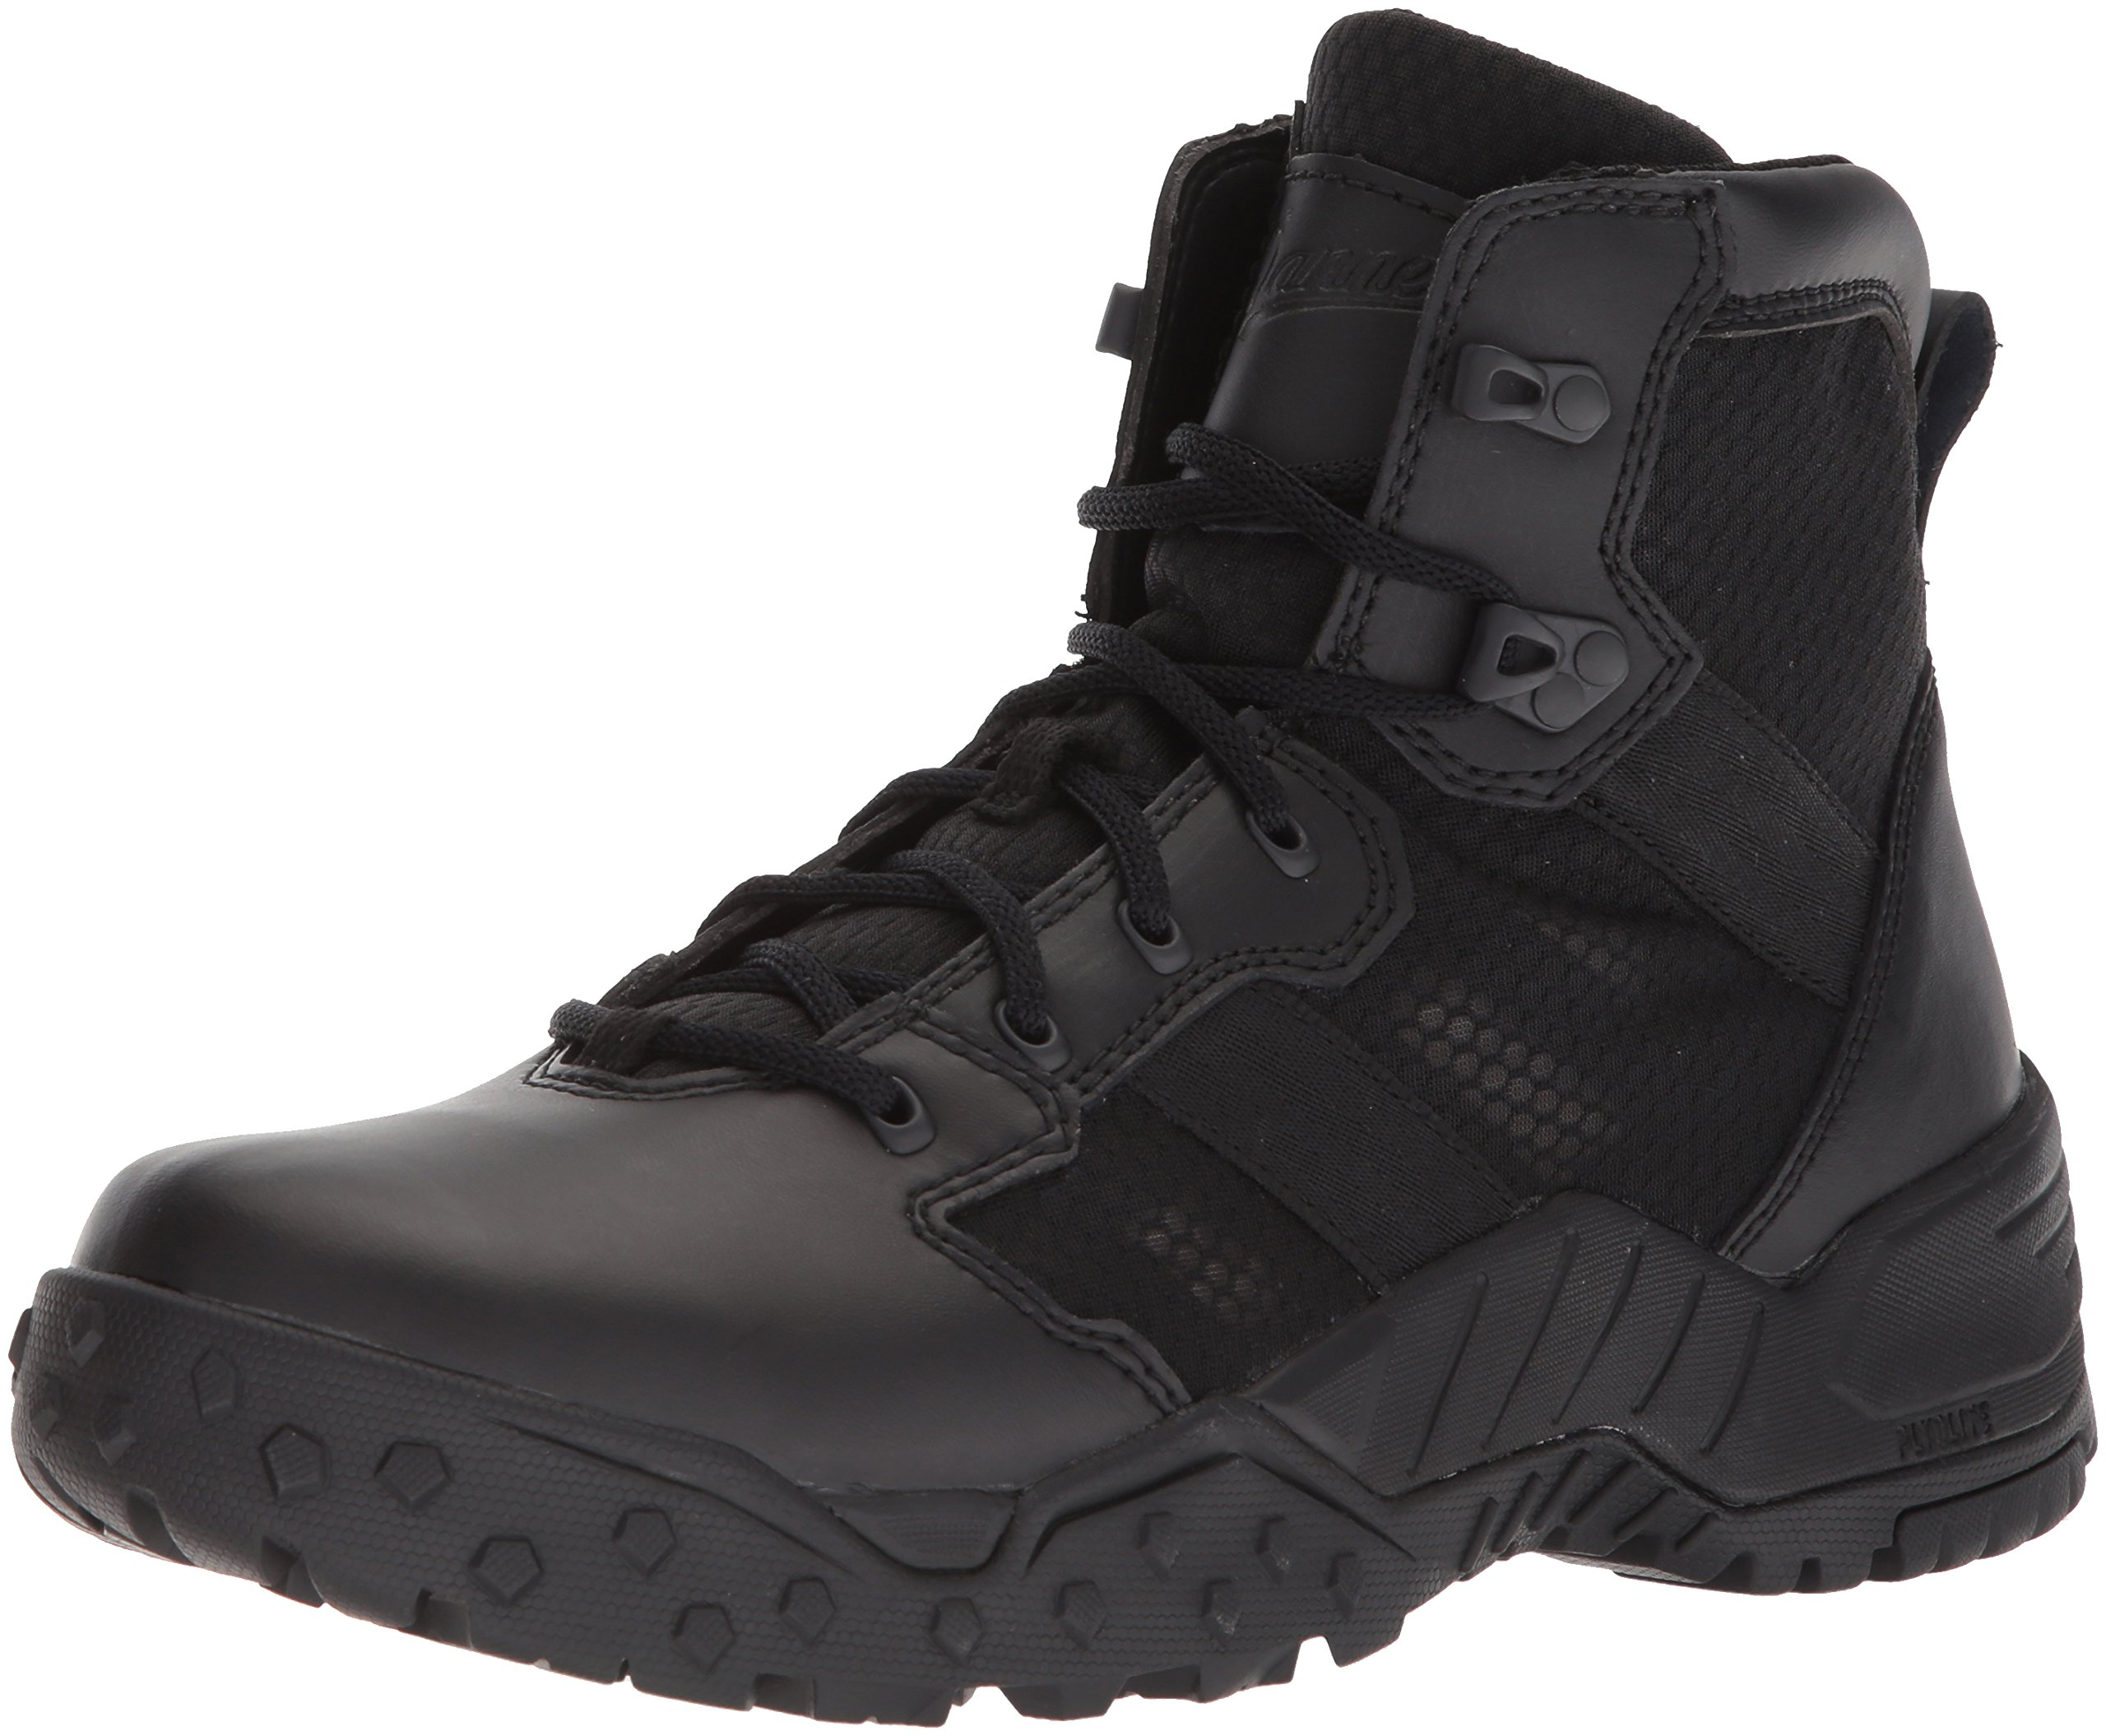 Danner Men's Scorch Side-Zip 6'' Military and Tactical Boot, Black Hot, 11.5 D US by Danner